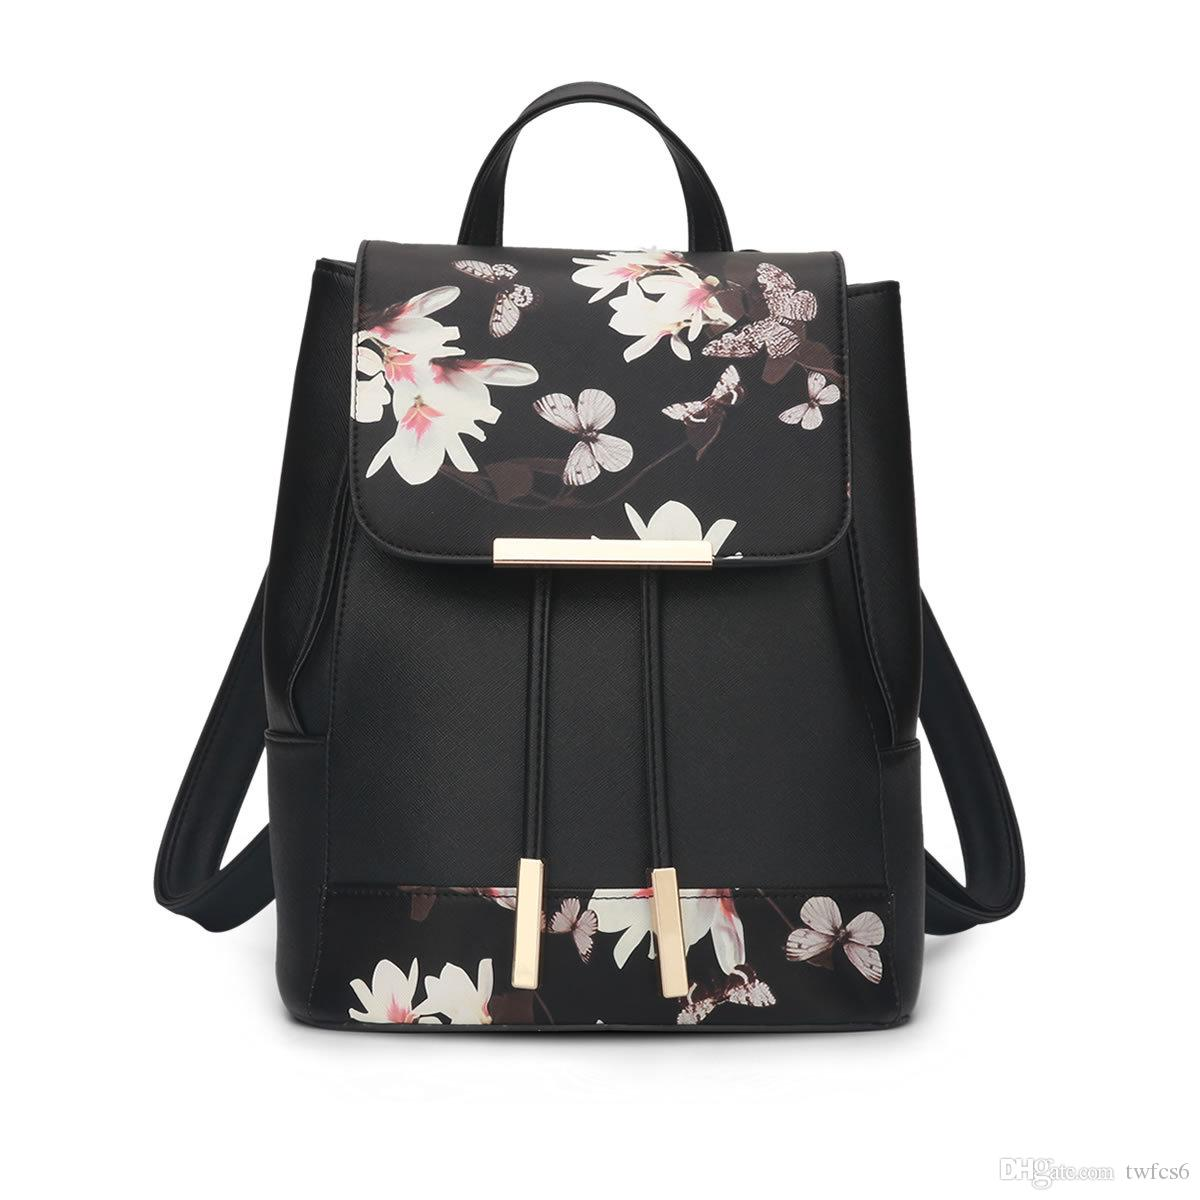 New fashion trendy girl student pretty butterfly feather black backpack schoolbag young ladies high quality good shape backpack bag